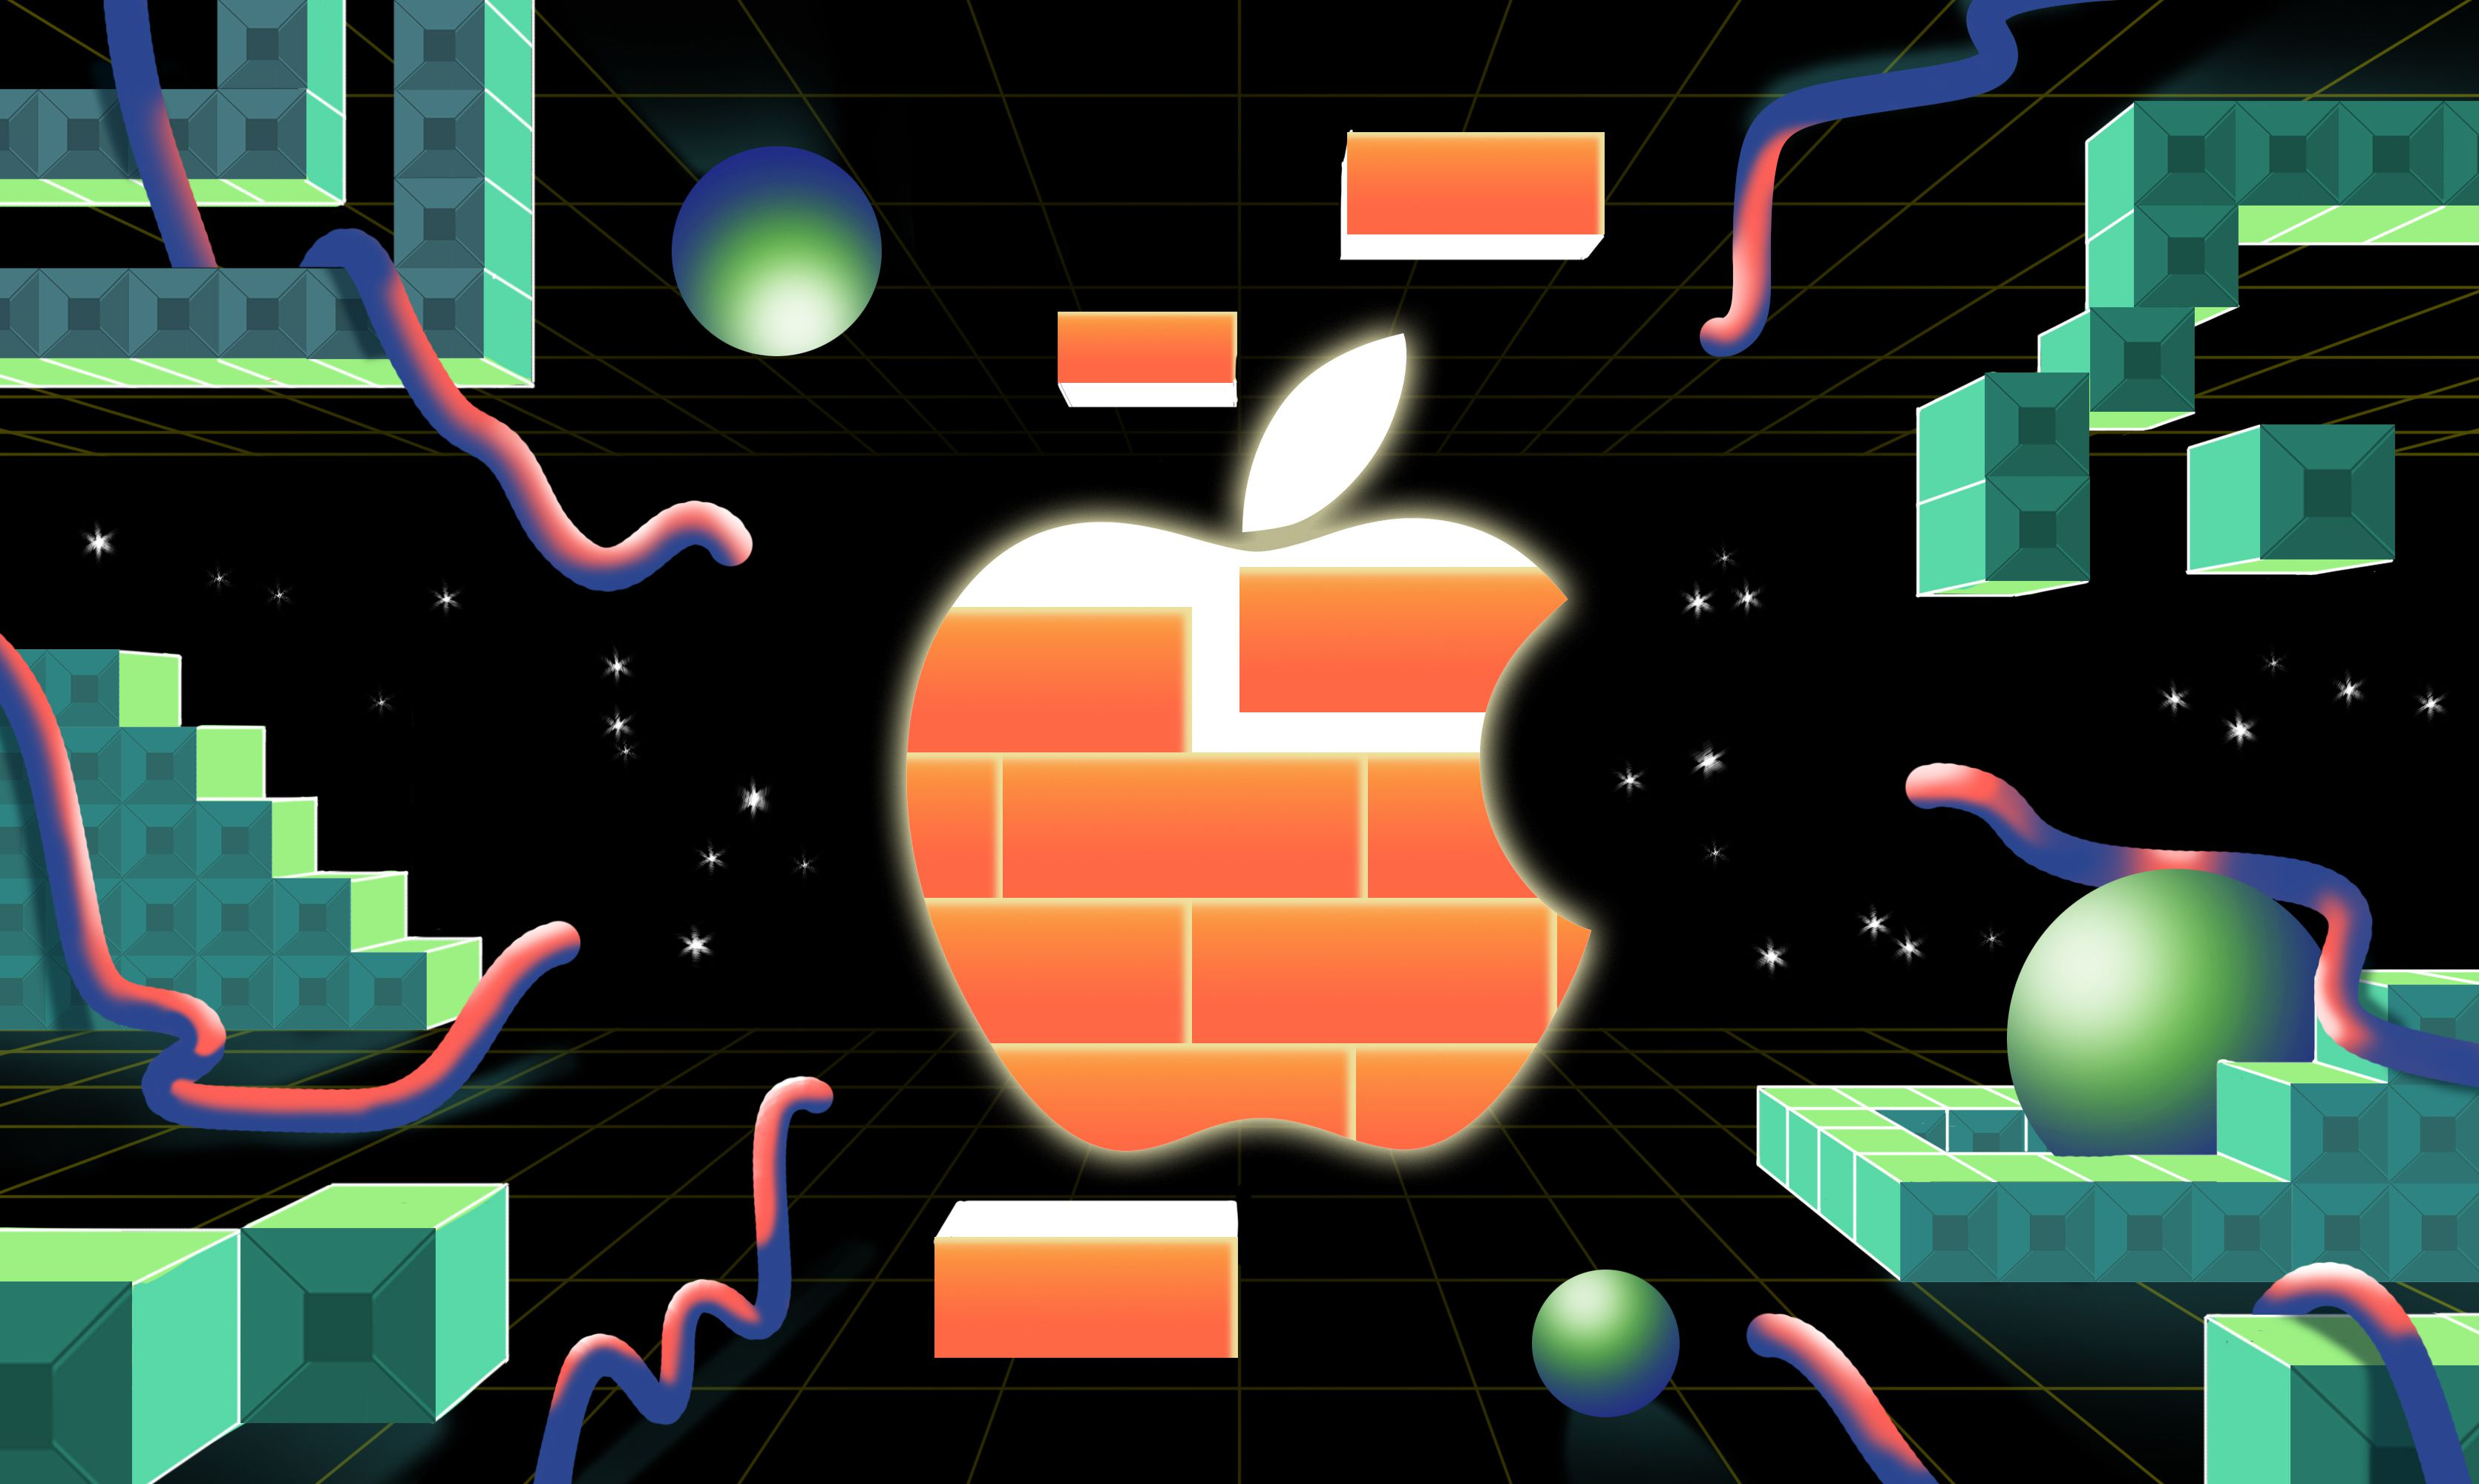 On Monday, April 26, 2021, Apple plans to release iOS 14.5, one of its most anticipated software updates for iPhones and iPads in years. It includes a new privacy tool, called App Tracking Transparency, which could give us more control over how our data is shared. (Glenn Harvey/The New York Times) -- NO SALES; FOR EDITORIAL USE ONLY WITH NYT STORY TECH-FIX BY BRIAN X. CHEN FOR APRIL 26, 2021. ALL OTHER USE PROHIBITED. --